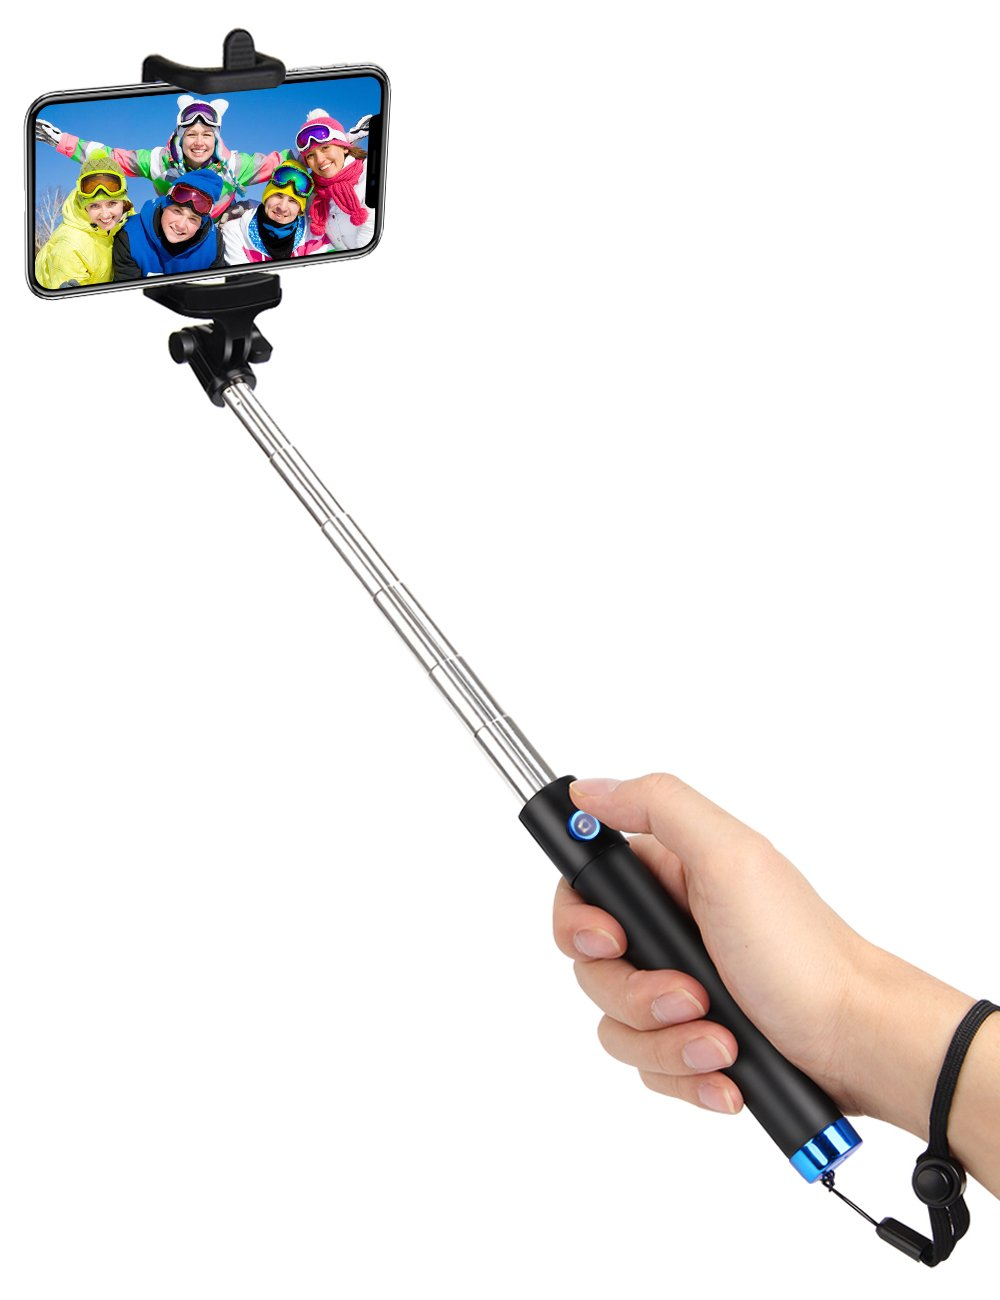 kungfuren Selfie Stick Bluetooth, 50-Hour Long Battery Life, Built-in Remote Camera Shutter Selfie Stick for iPhone 7 Plus All iOS and Android Smart Phones Blue KungfurenDirect ks36 Blue